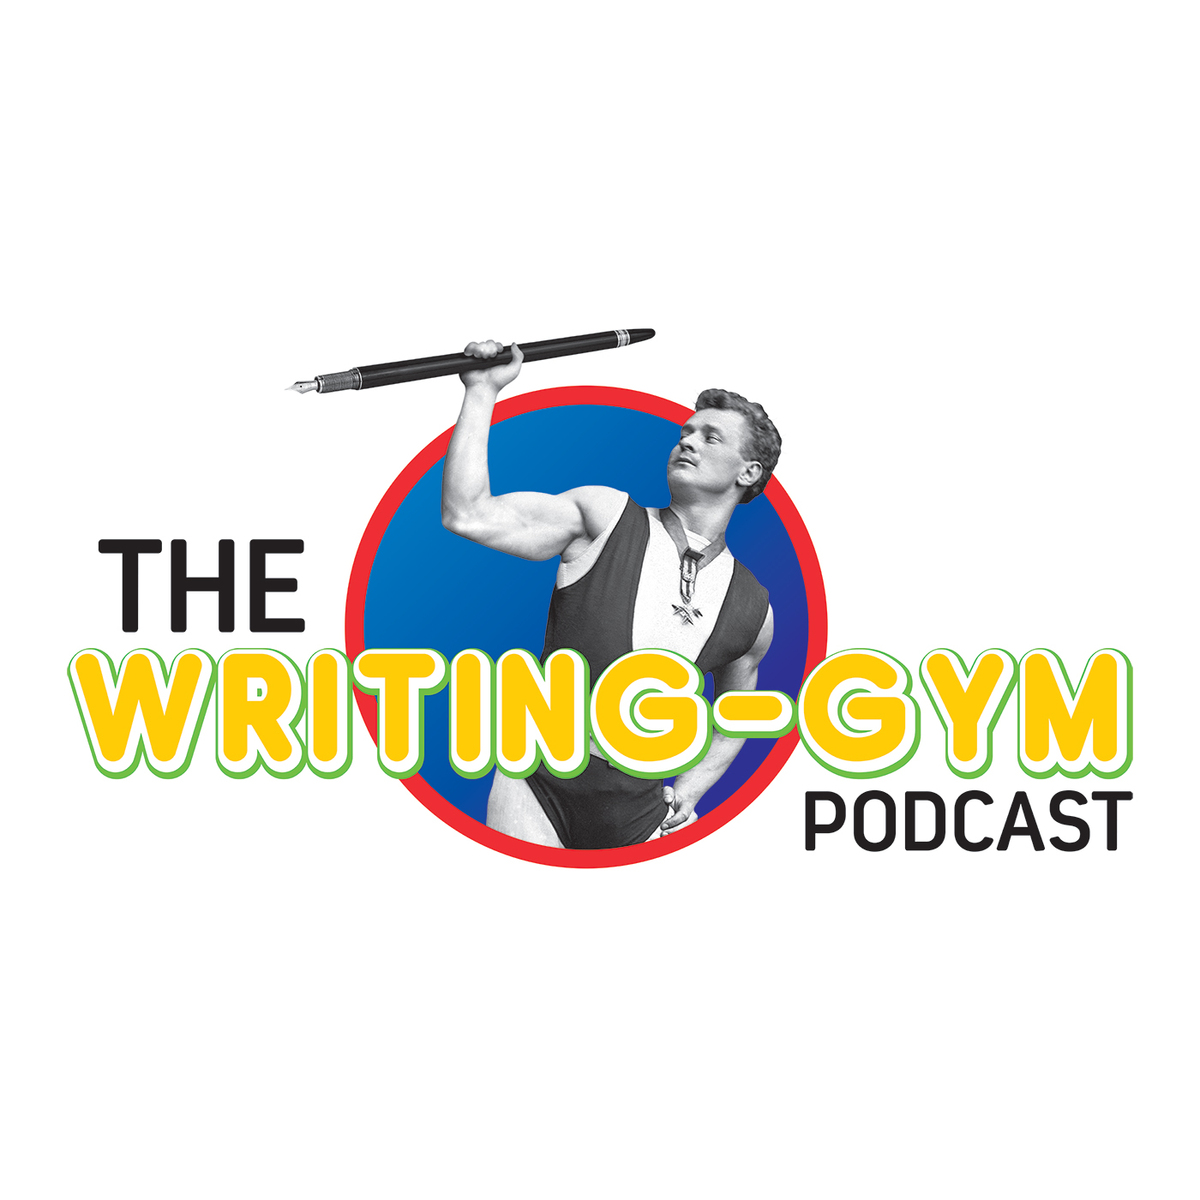 Ep. 140: What do authors say about the author lifestyle? | River Jordan